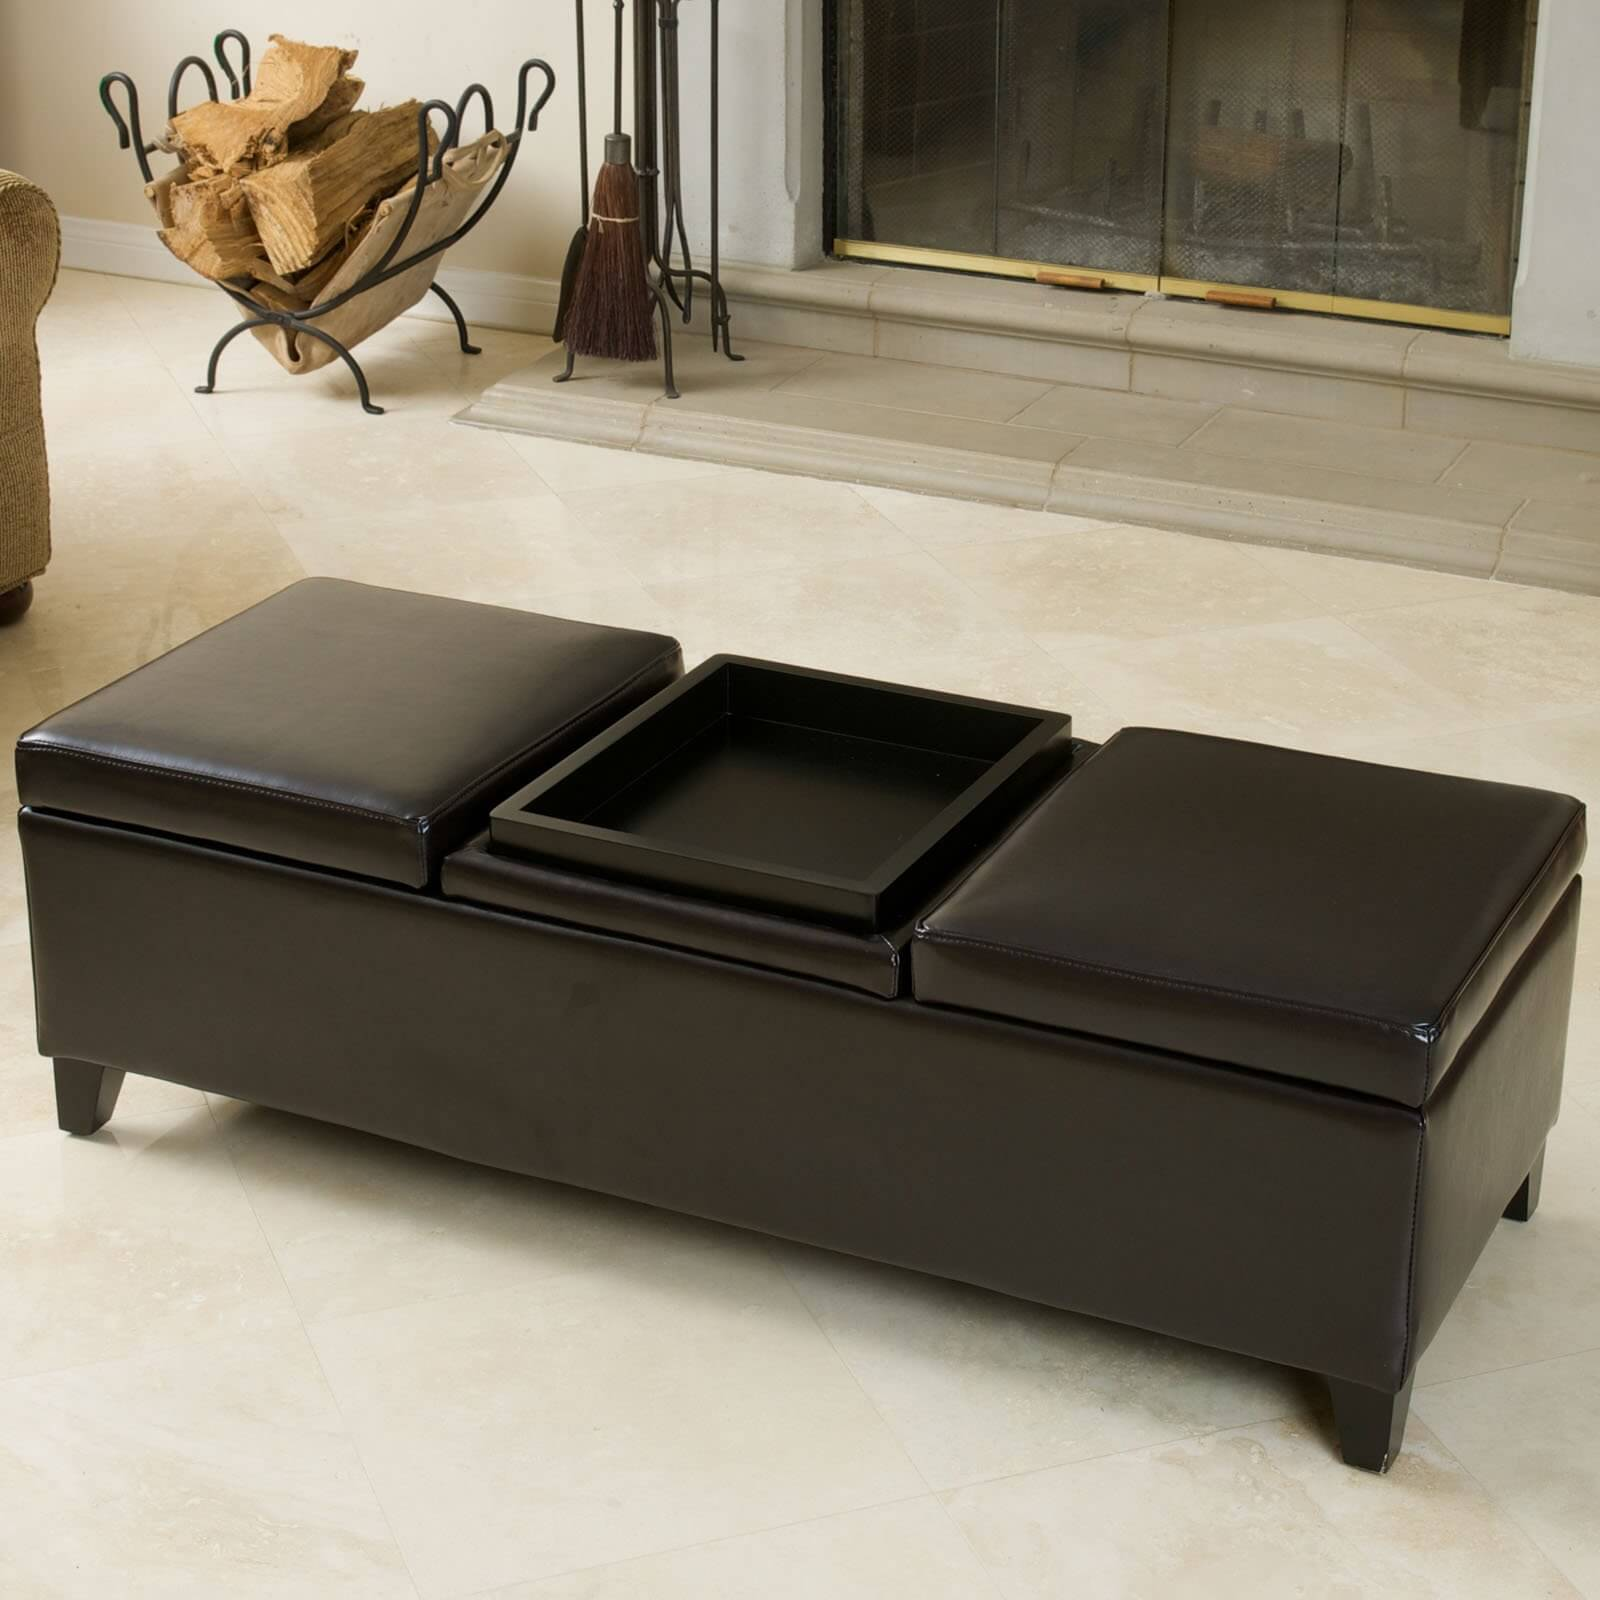 Large Ottoman Coffee Table Tray: 36 Top Brown Leather Ottoman Coffee Tables